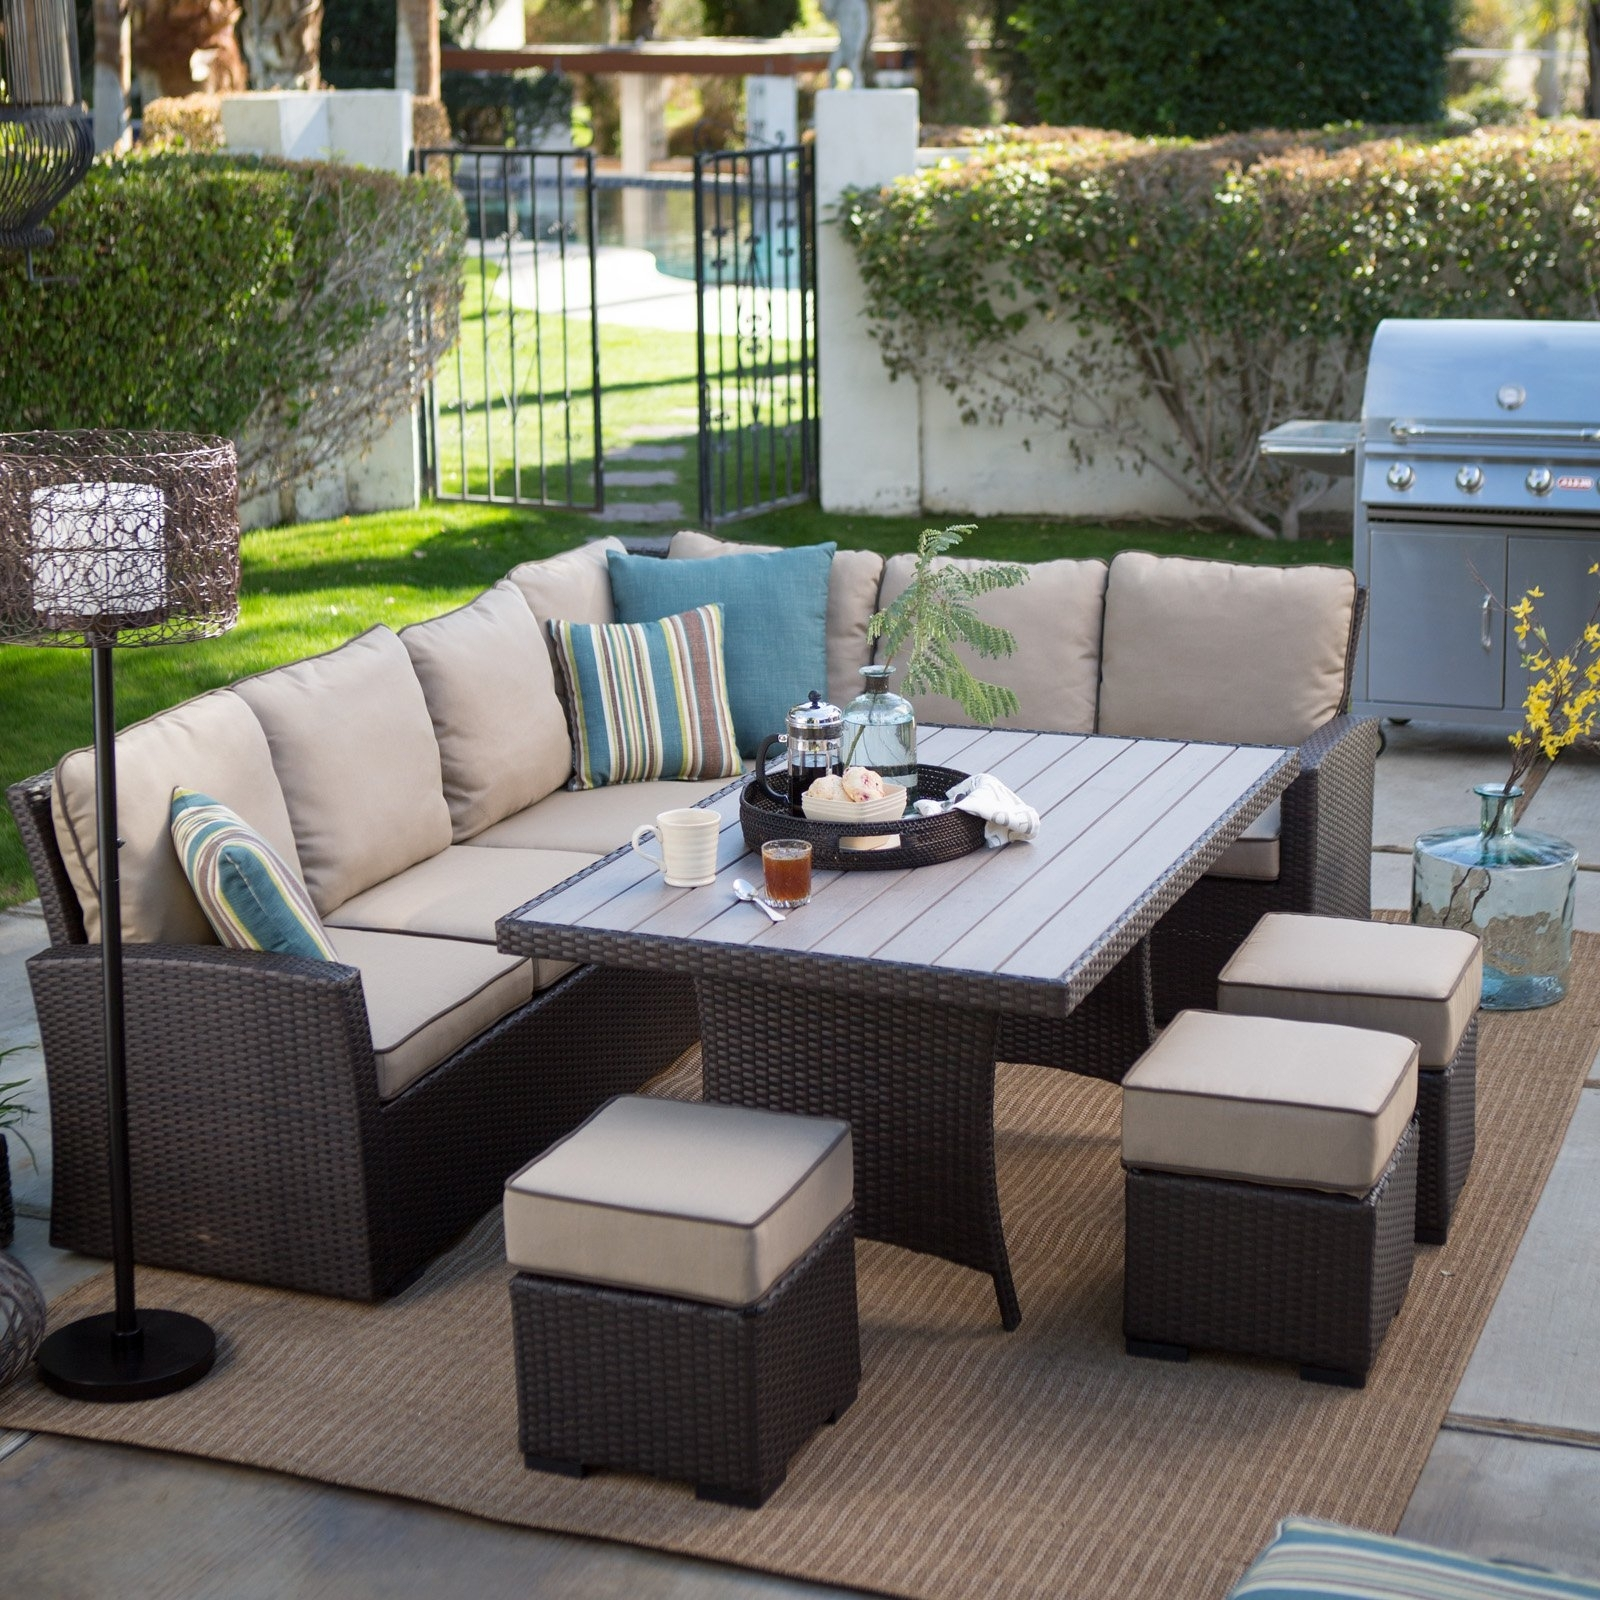 Belham Living Monticello All Weather Wicker Sofa Sectional Patio For Well Liked Conversation Patio Sets With Outdoor Sectionals (View 2 of 20)